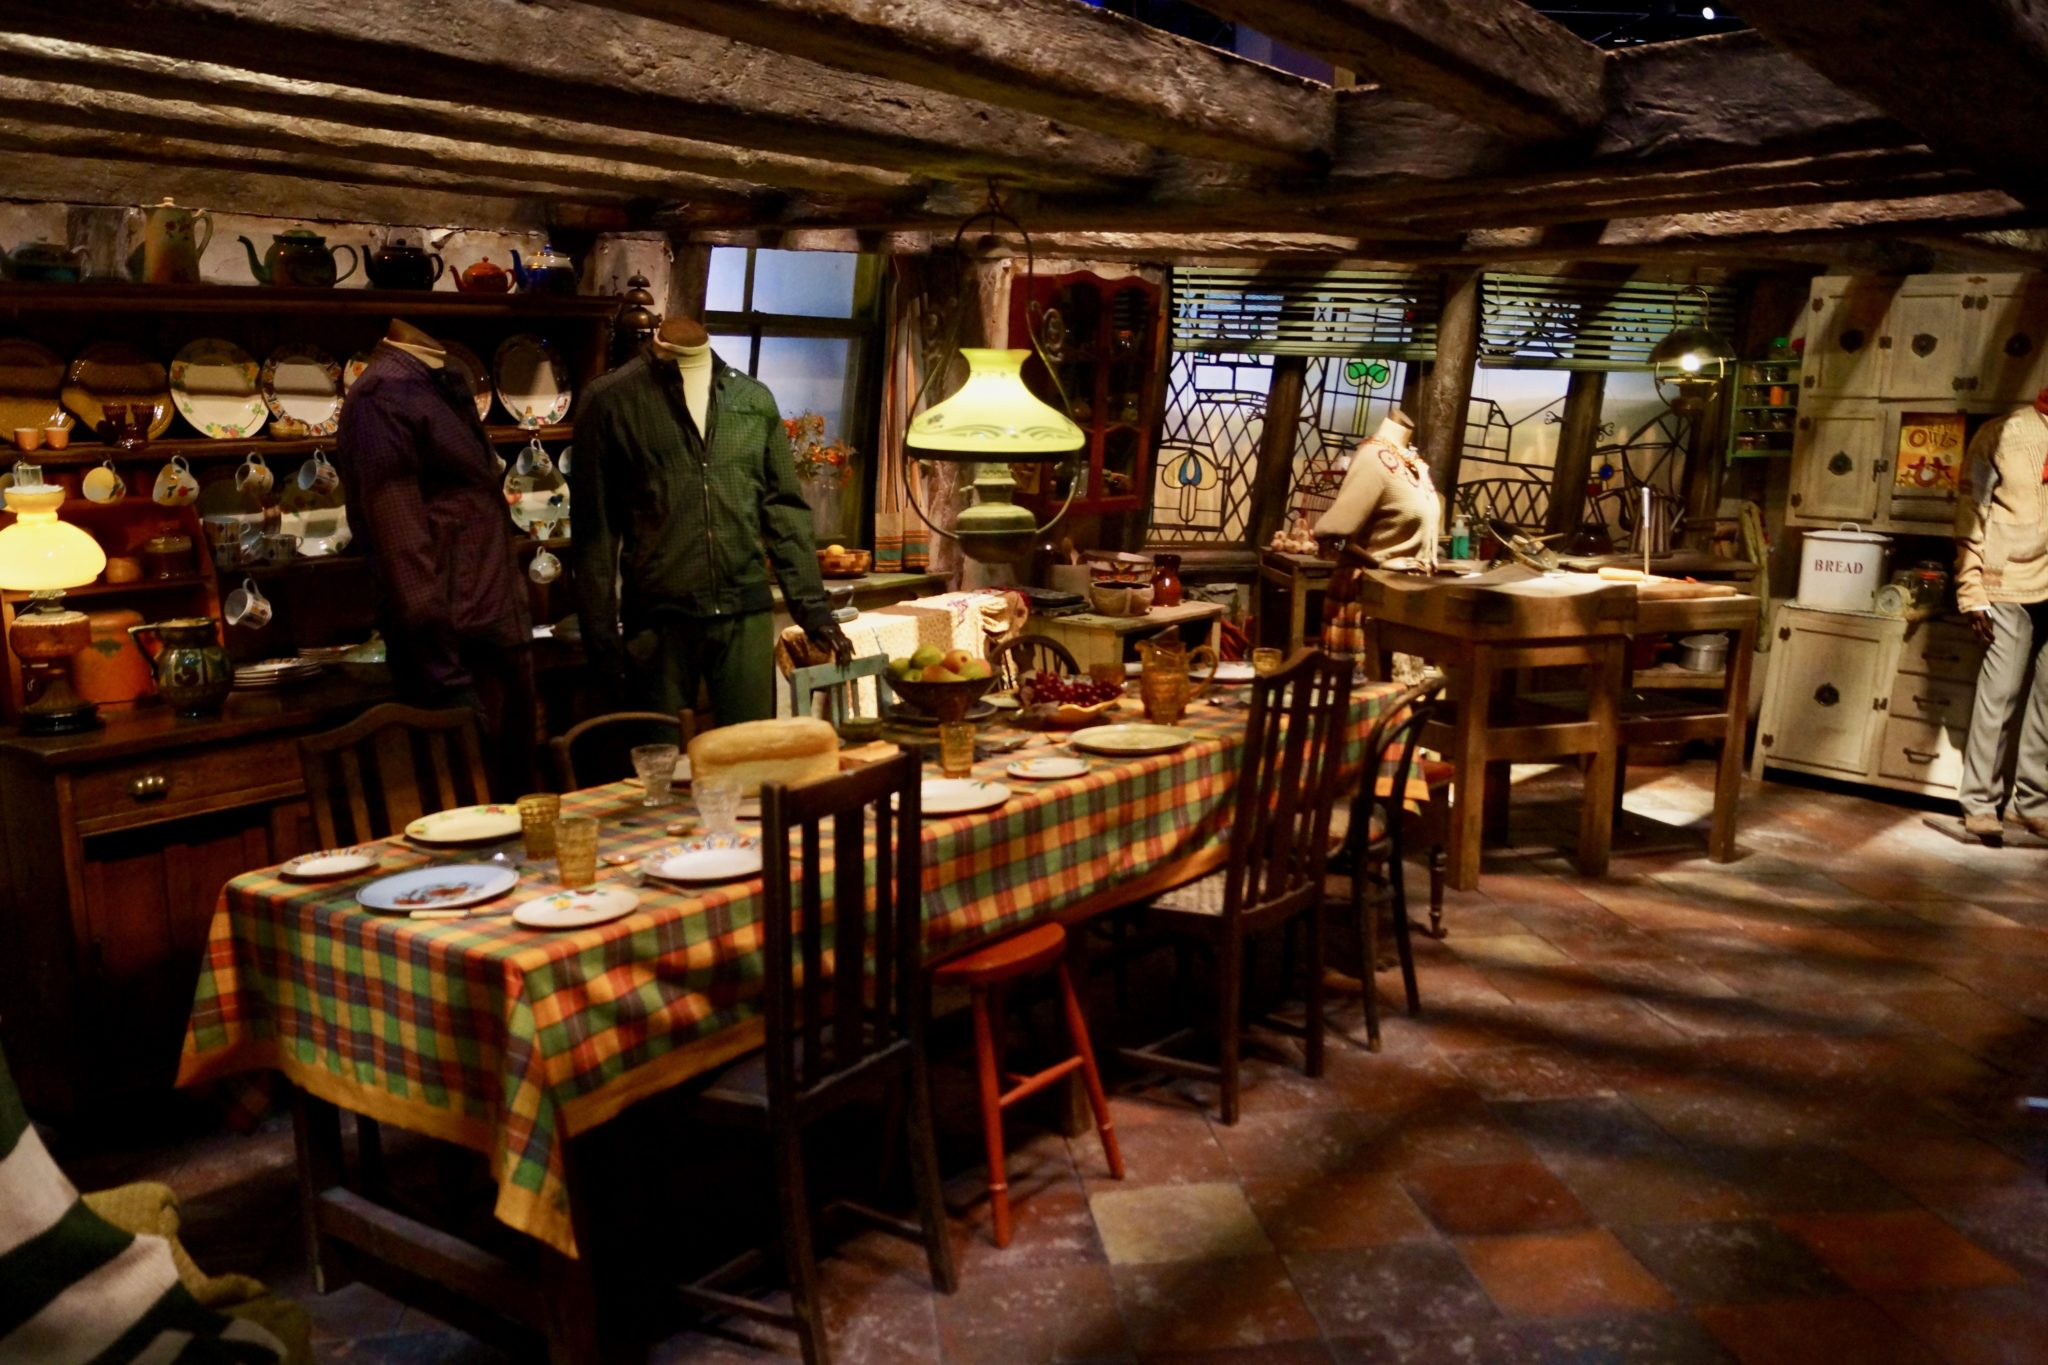 The Burrow, Weasley's Home